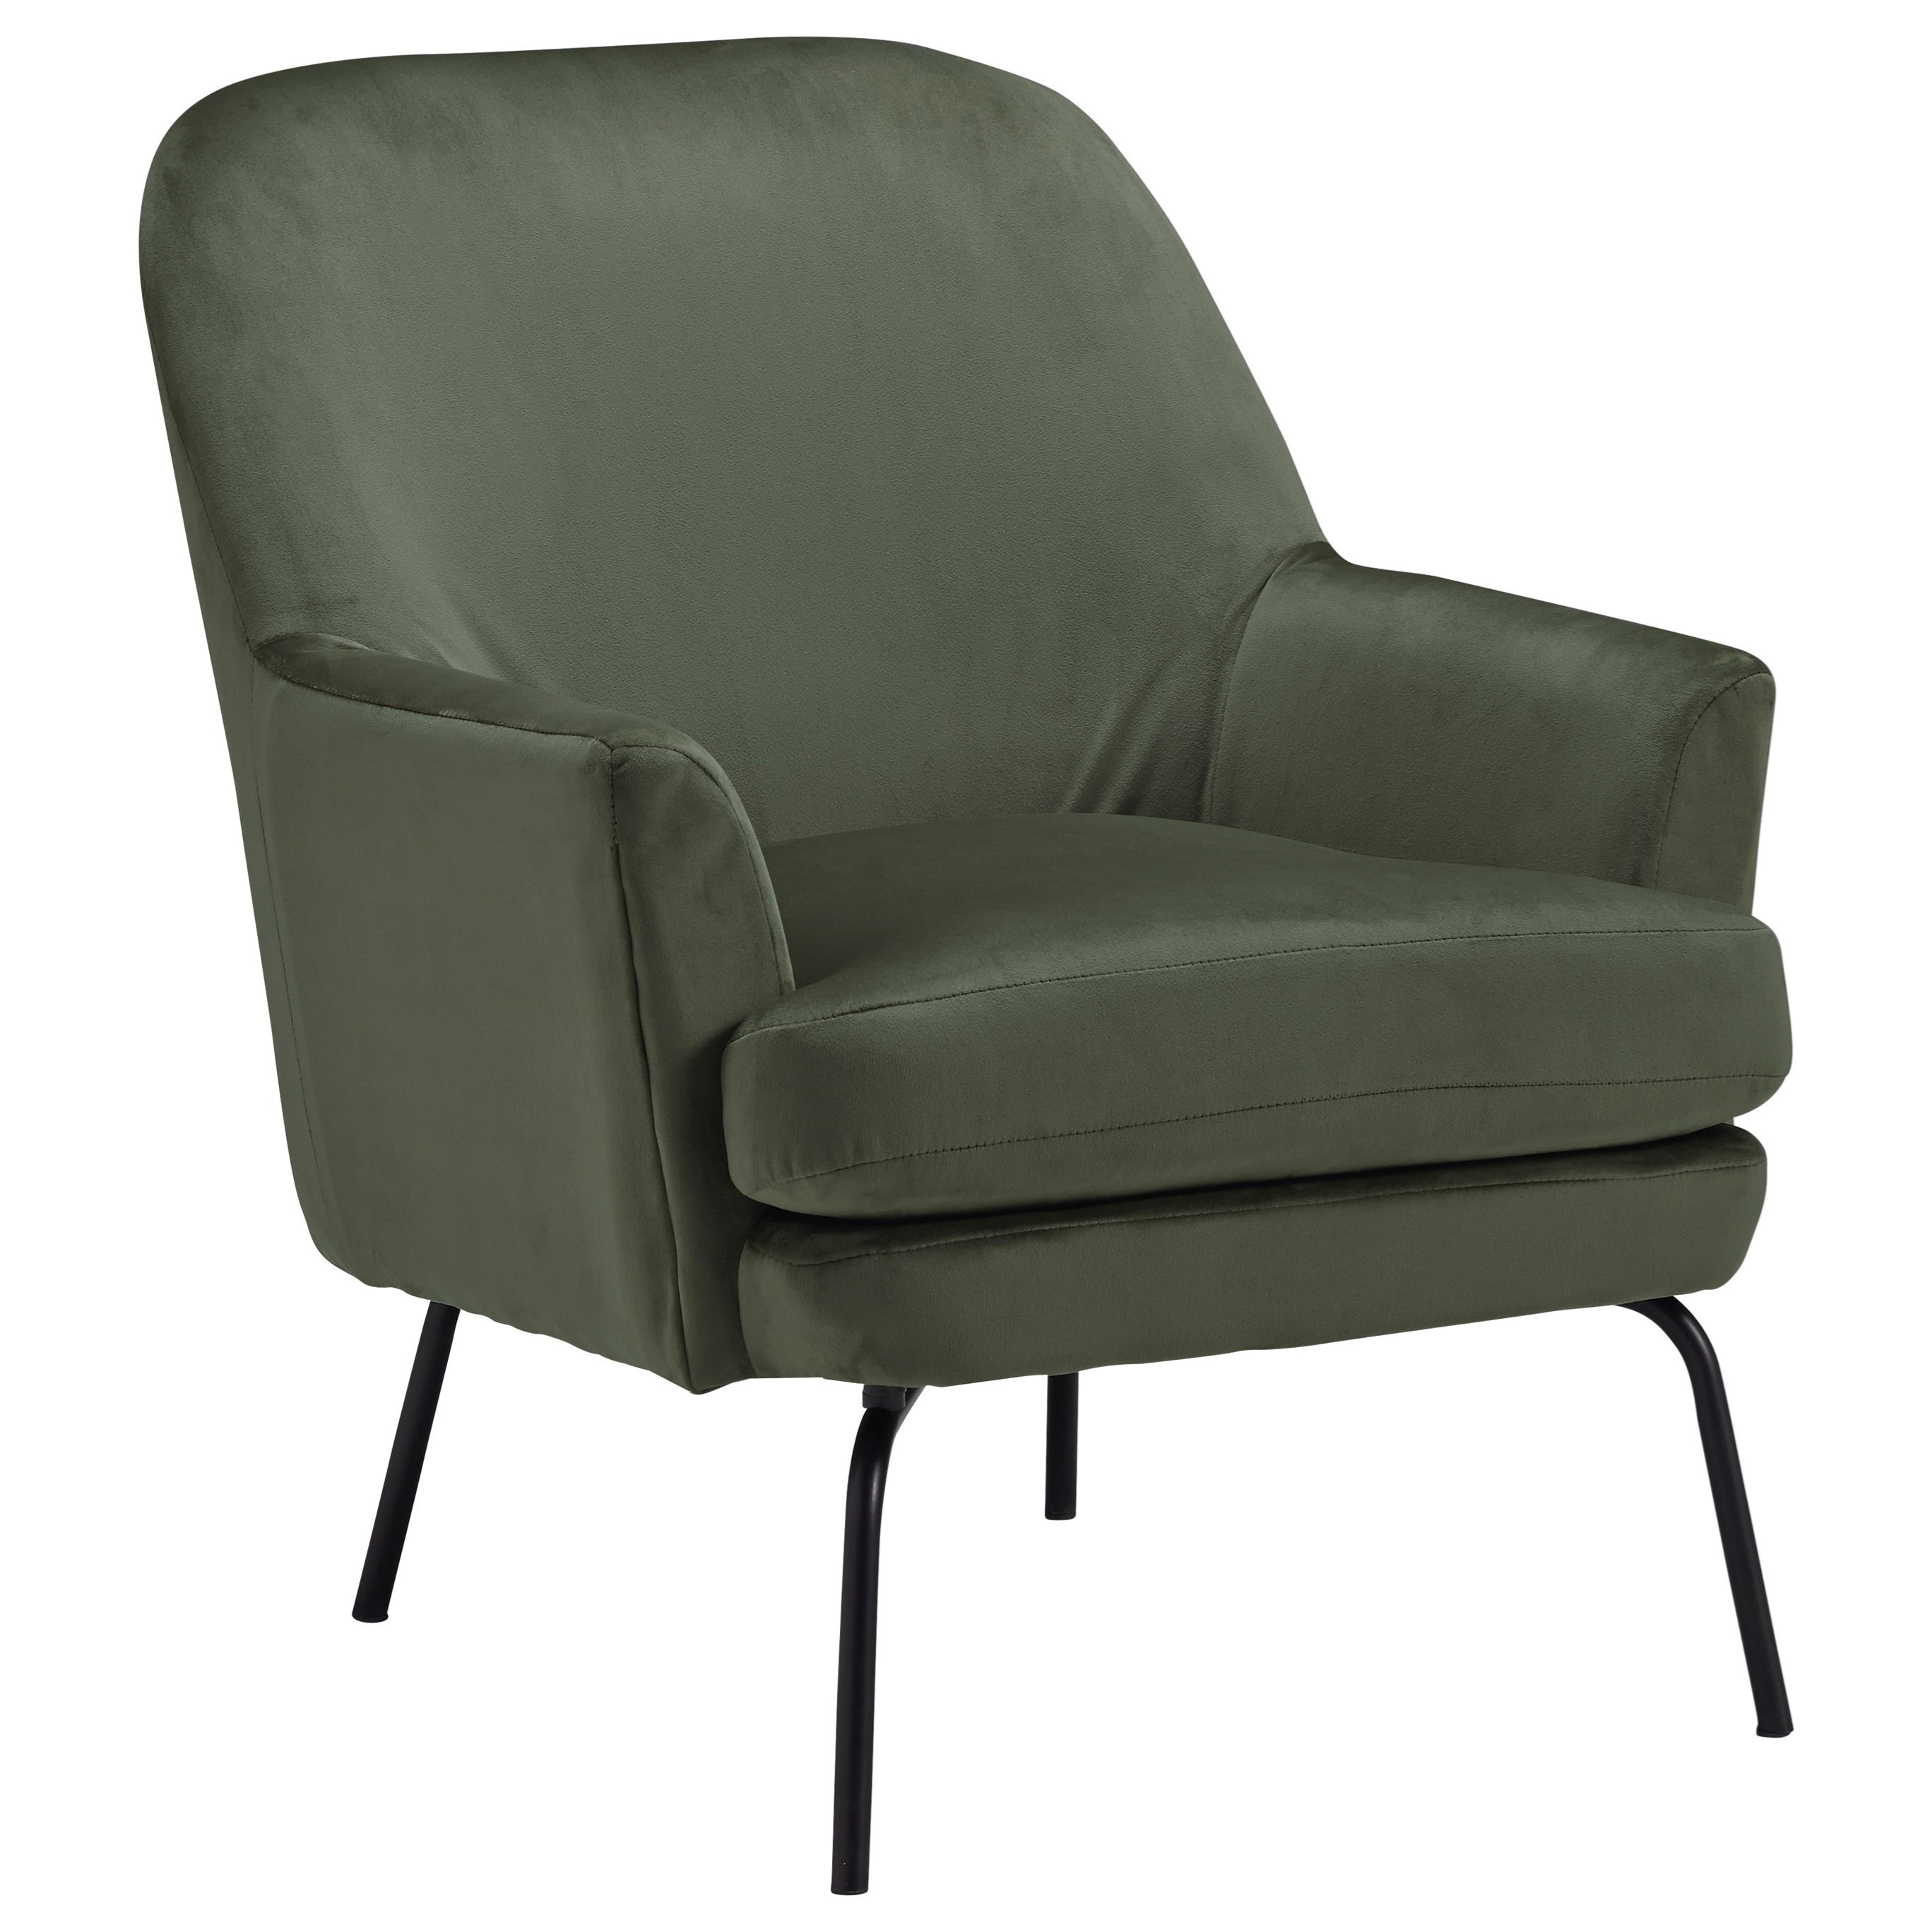 Dericka Accent Chair by Signature Design by Ashley at Furniture Barn